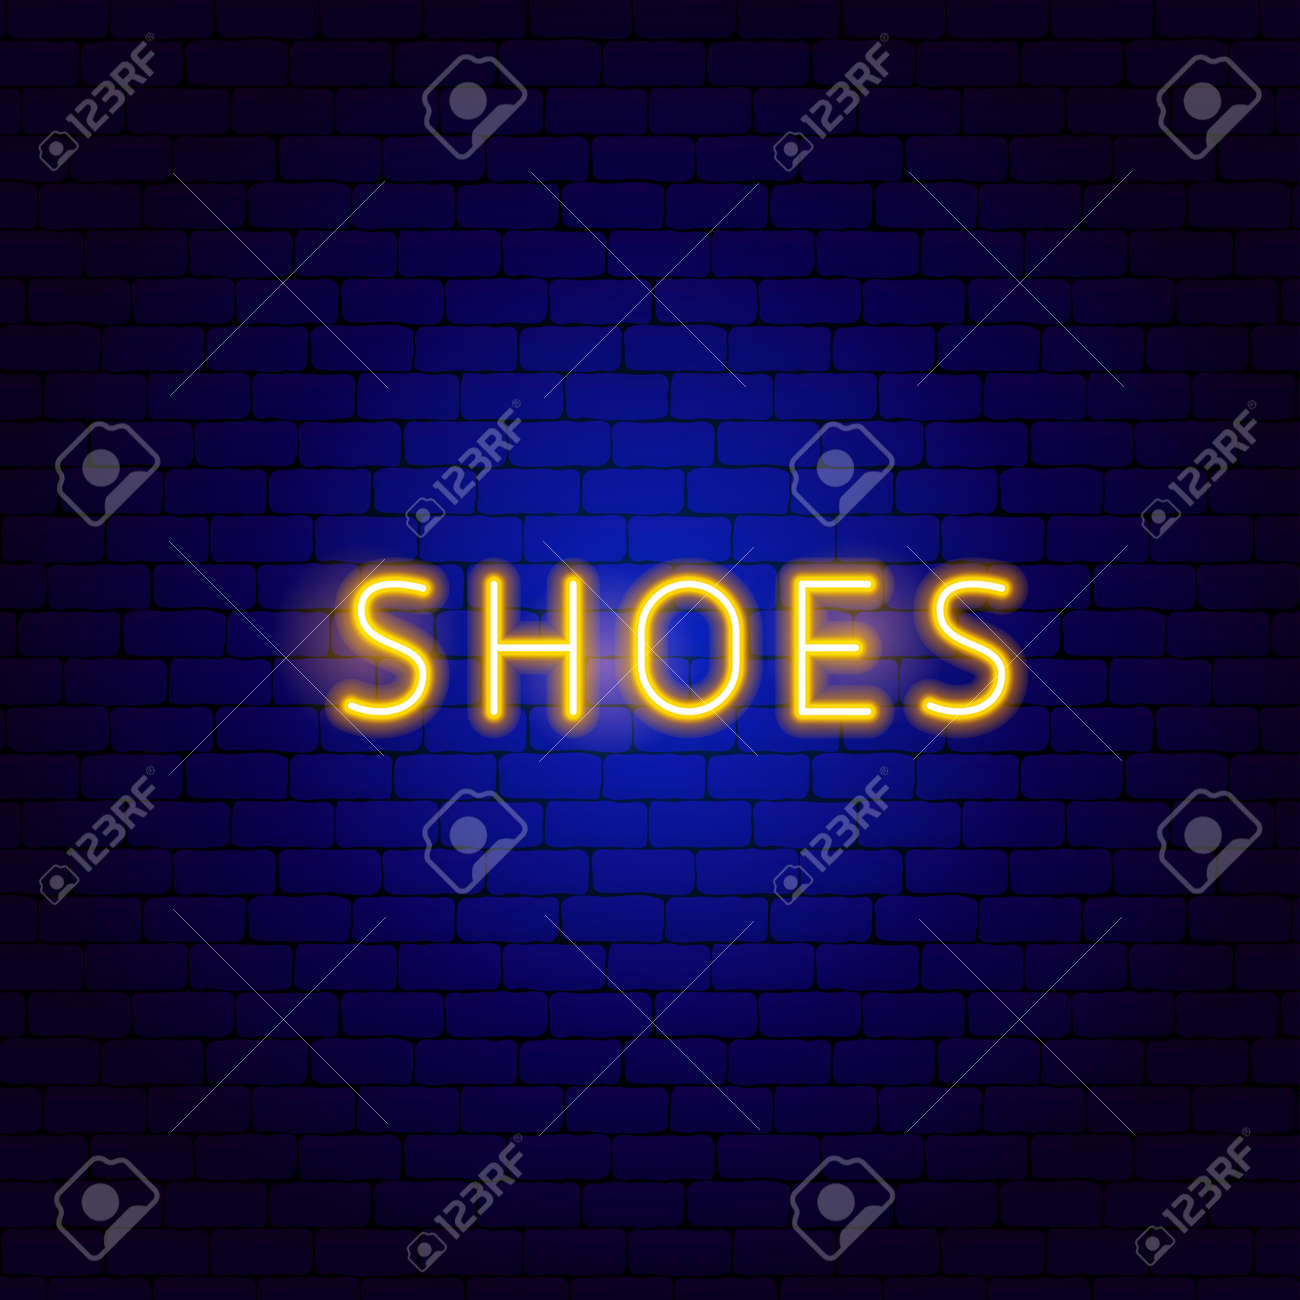 Shoes Neon Text - 168963149